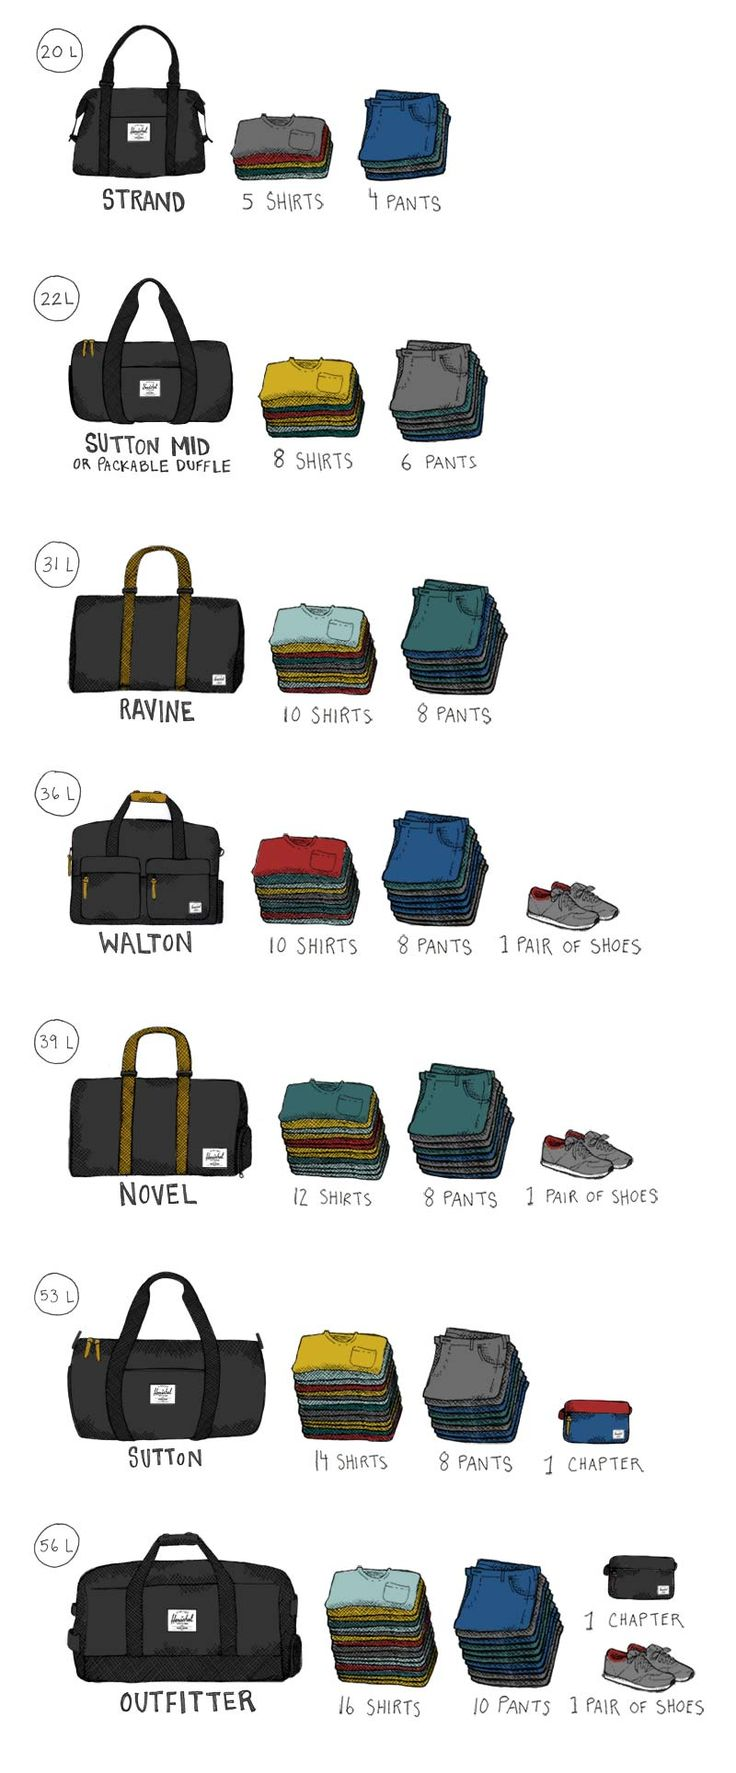 Herschel makes some great, really inexpensive travel duffels. If I were in the market for one, I'd get the Walton. There's a cool little separate compartment built into the bottom for shoes. Or smuggling illegal animals. Whatever.